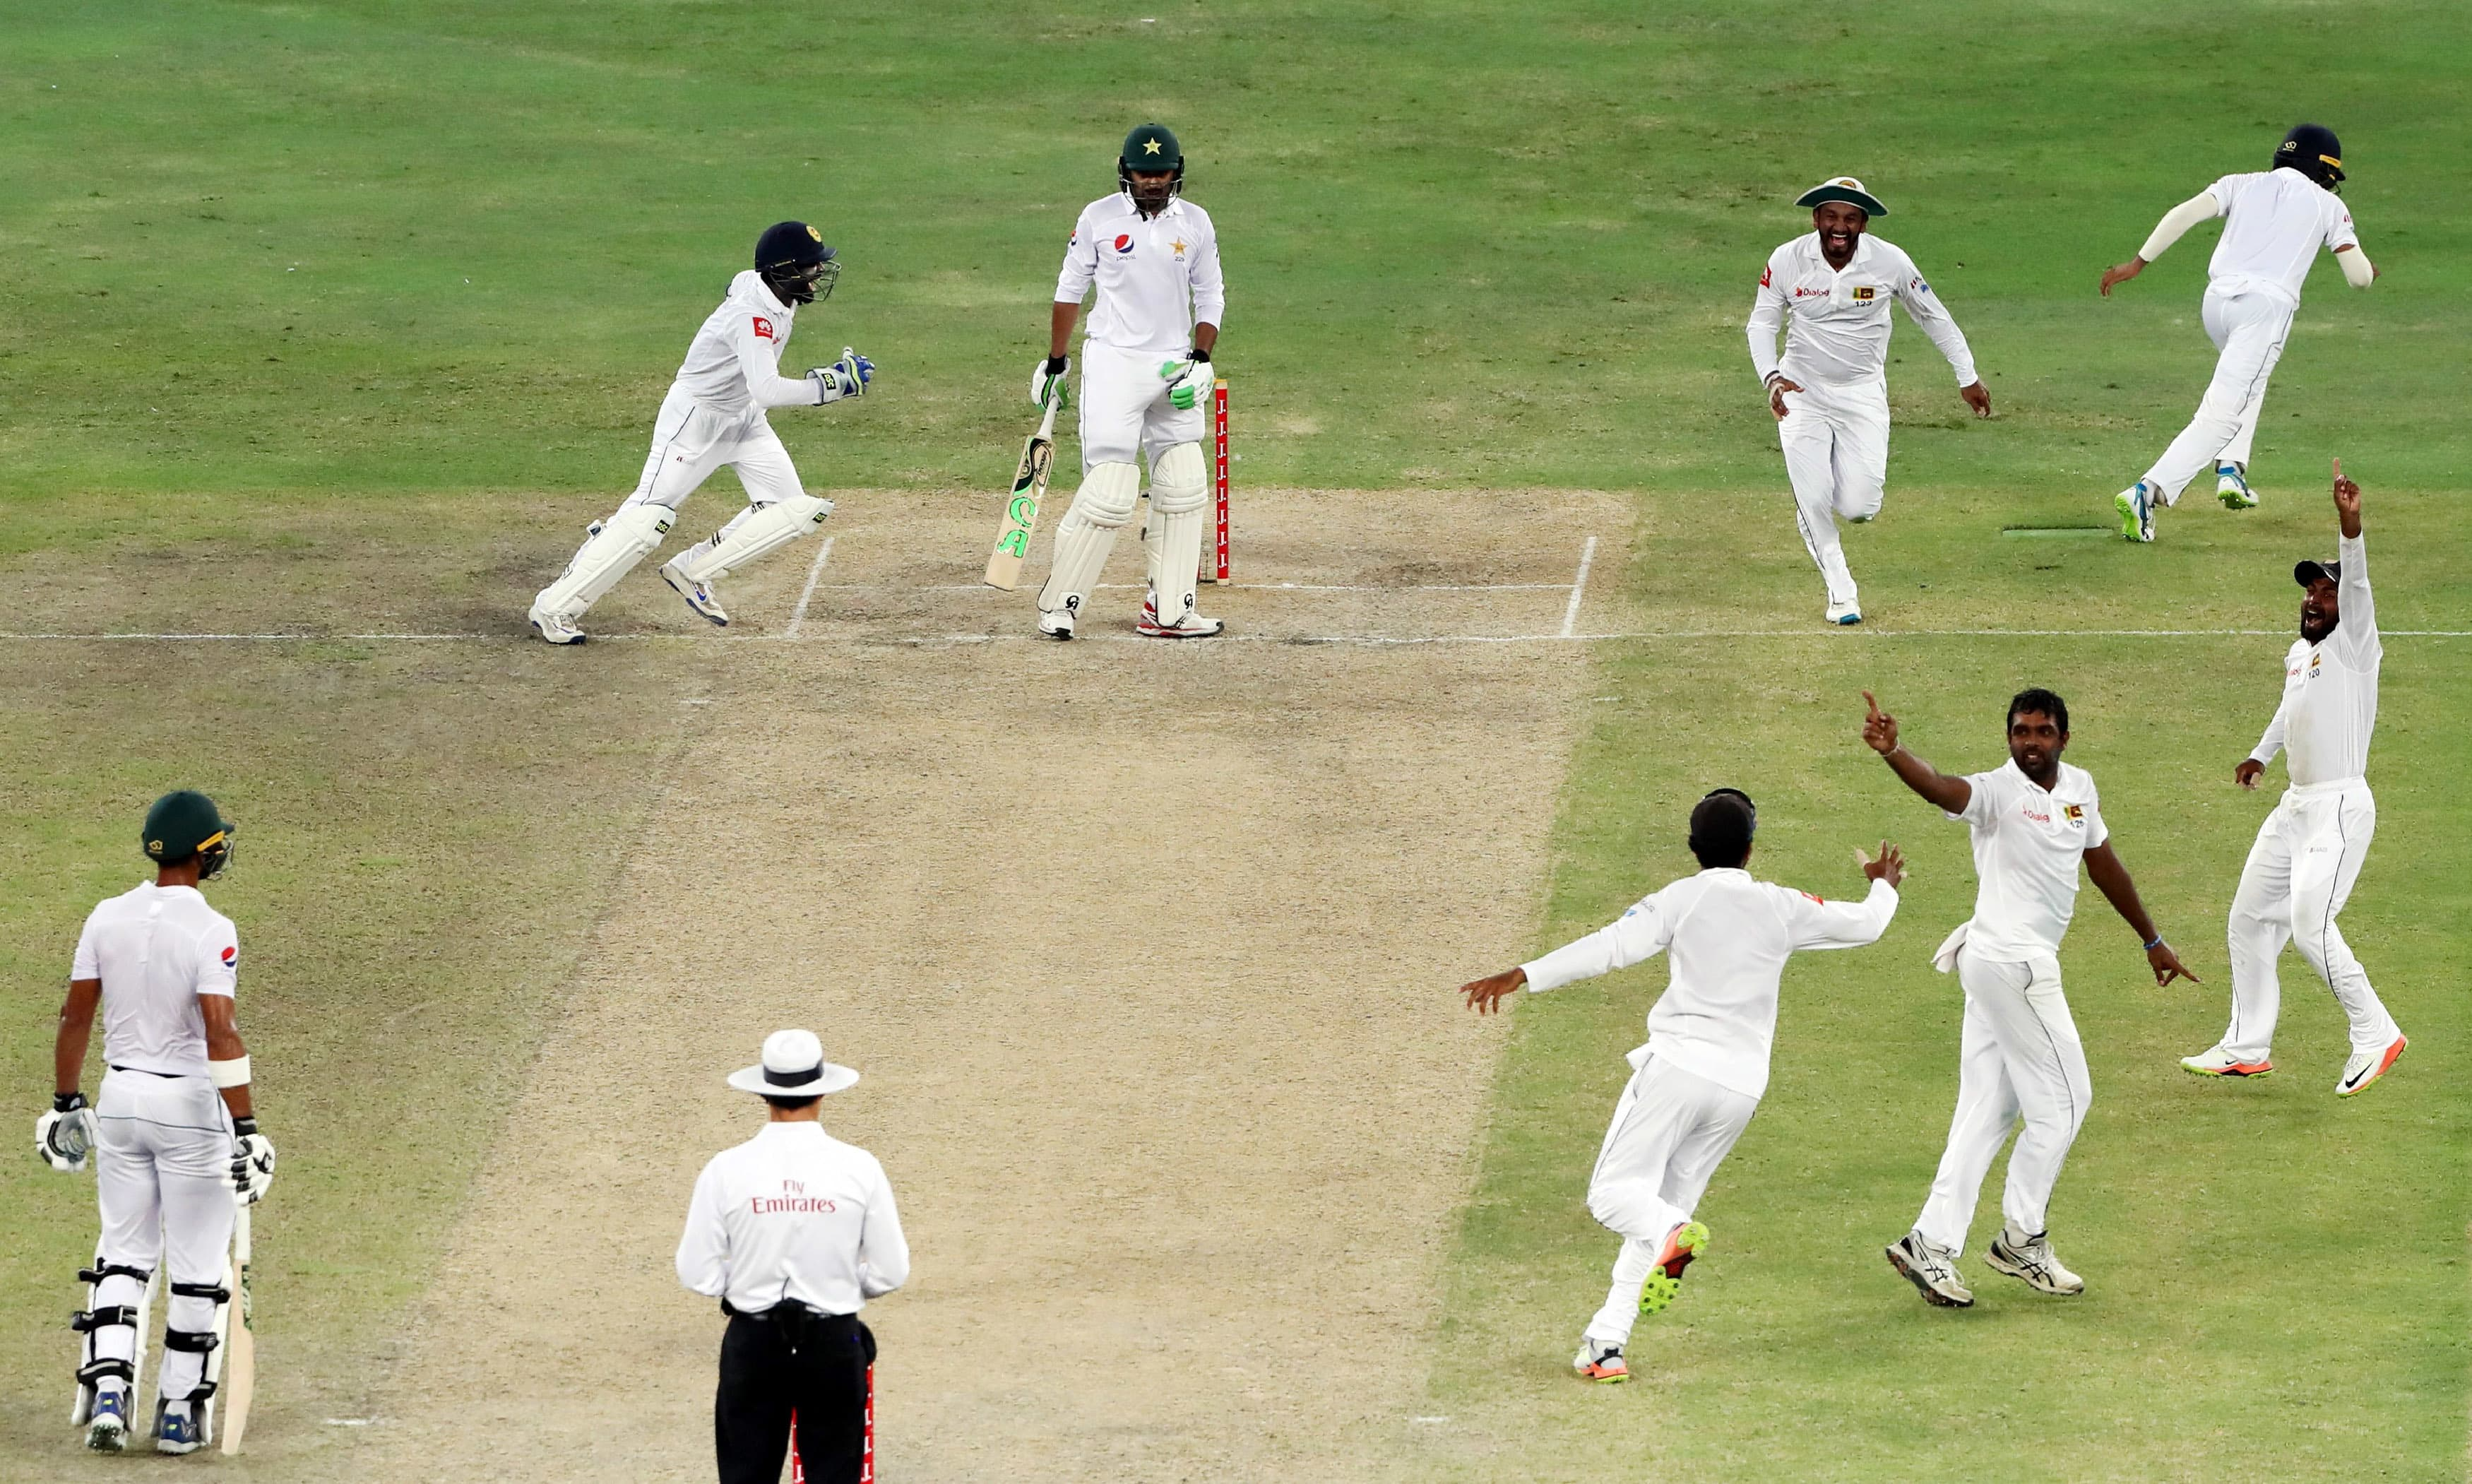 Sri Lanka's players celebrate the dismissal of Azhar Ali during the fourth day of the second Test. —AFP